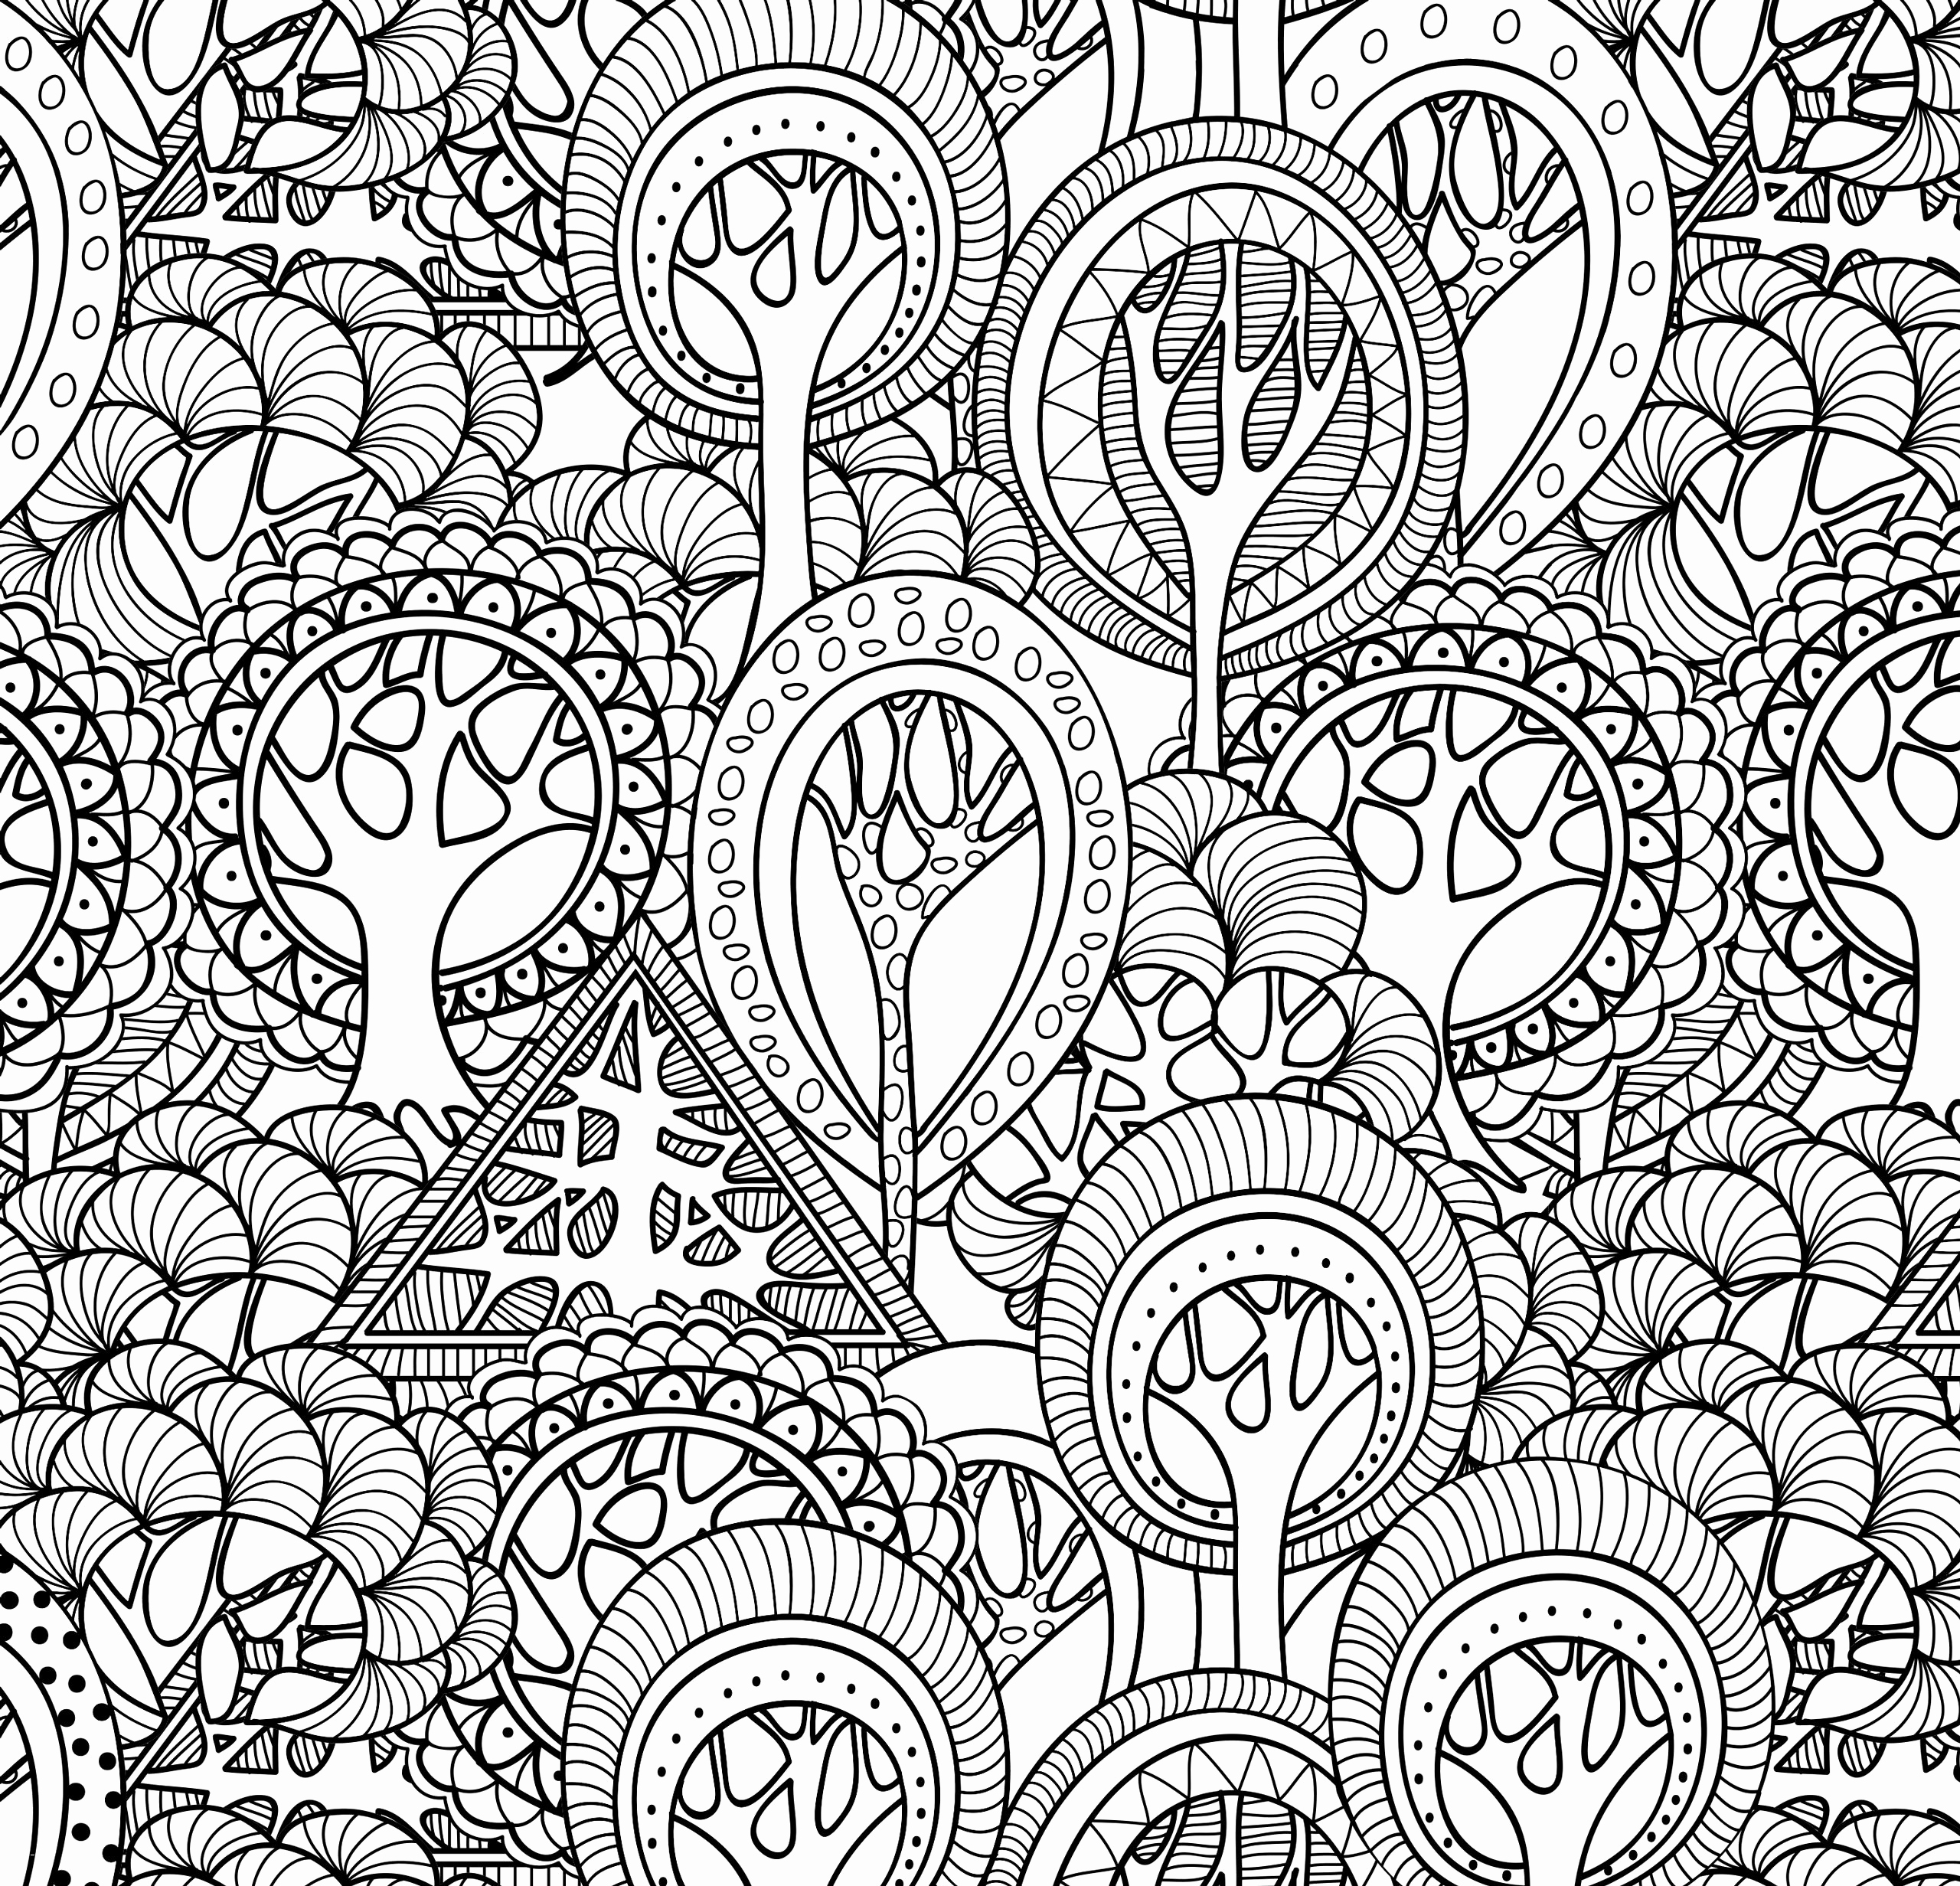 20 Color Therapy Coloring Pages Download Coloring Sheets